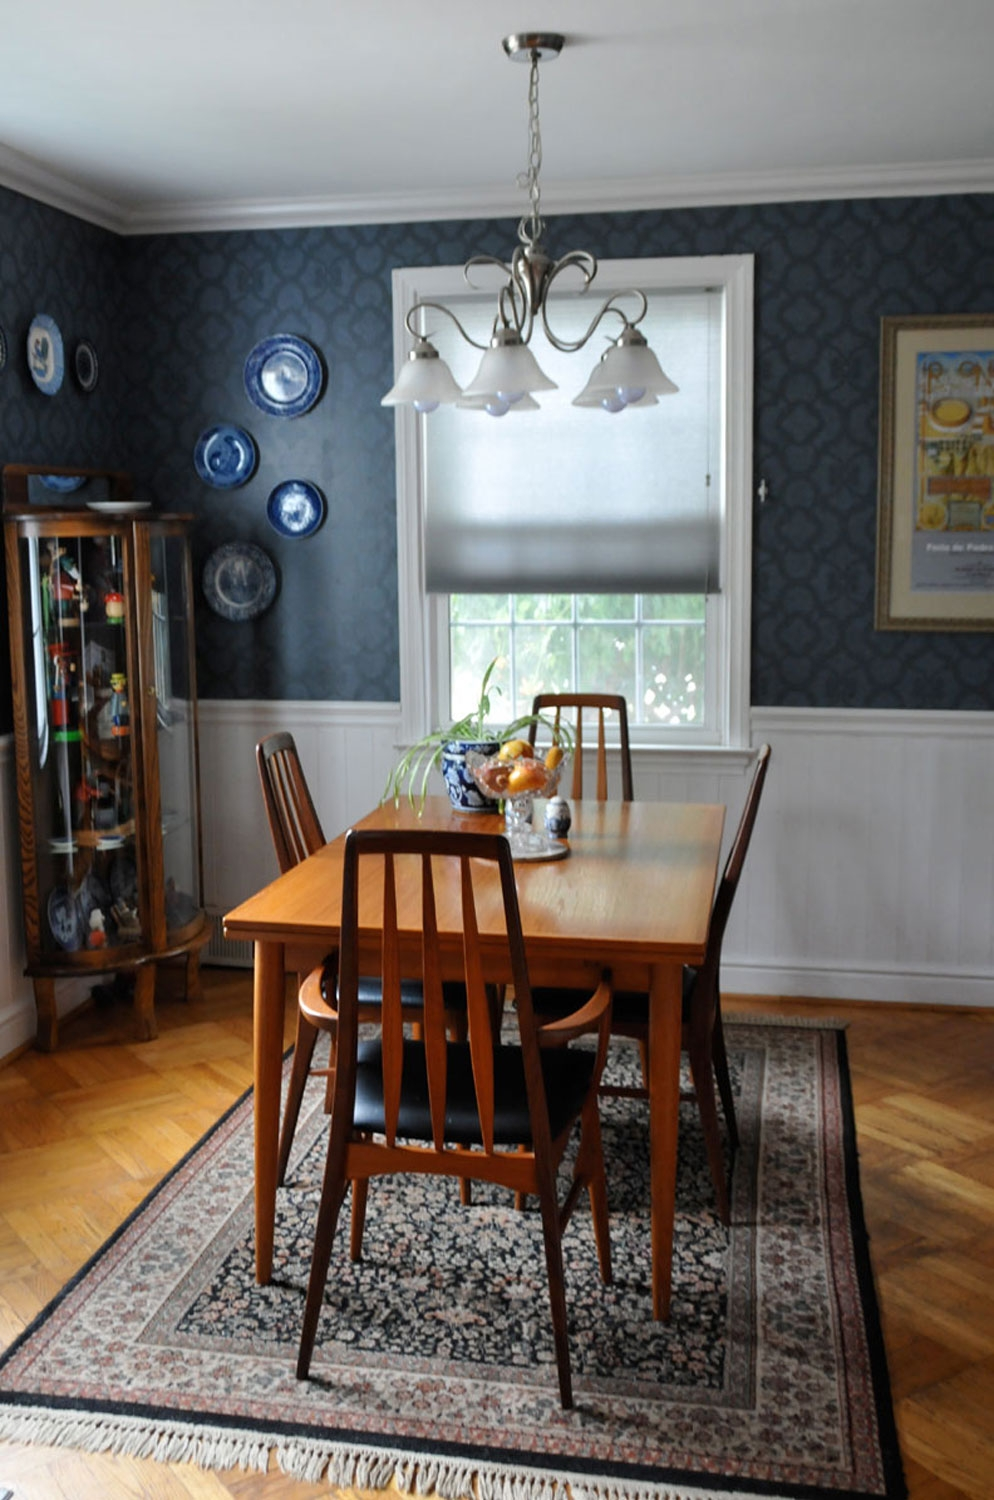 Blue Dining Room - The First upgrade for these new homeowners in Havertown, PA was going from bright green to a soothing blue dining room.